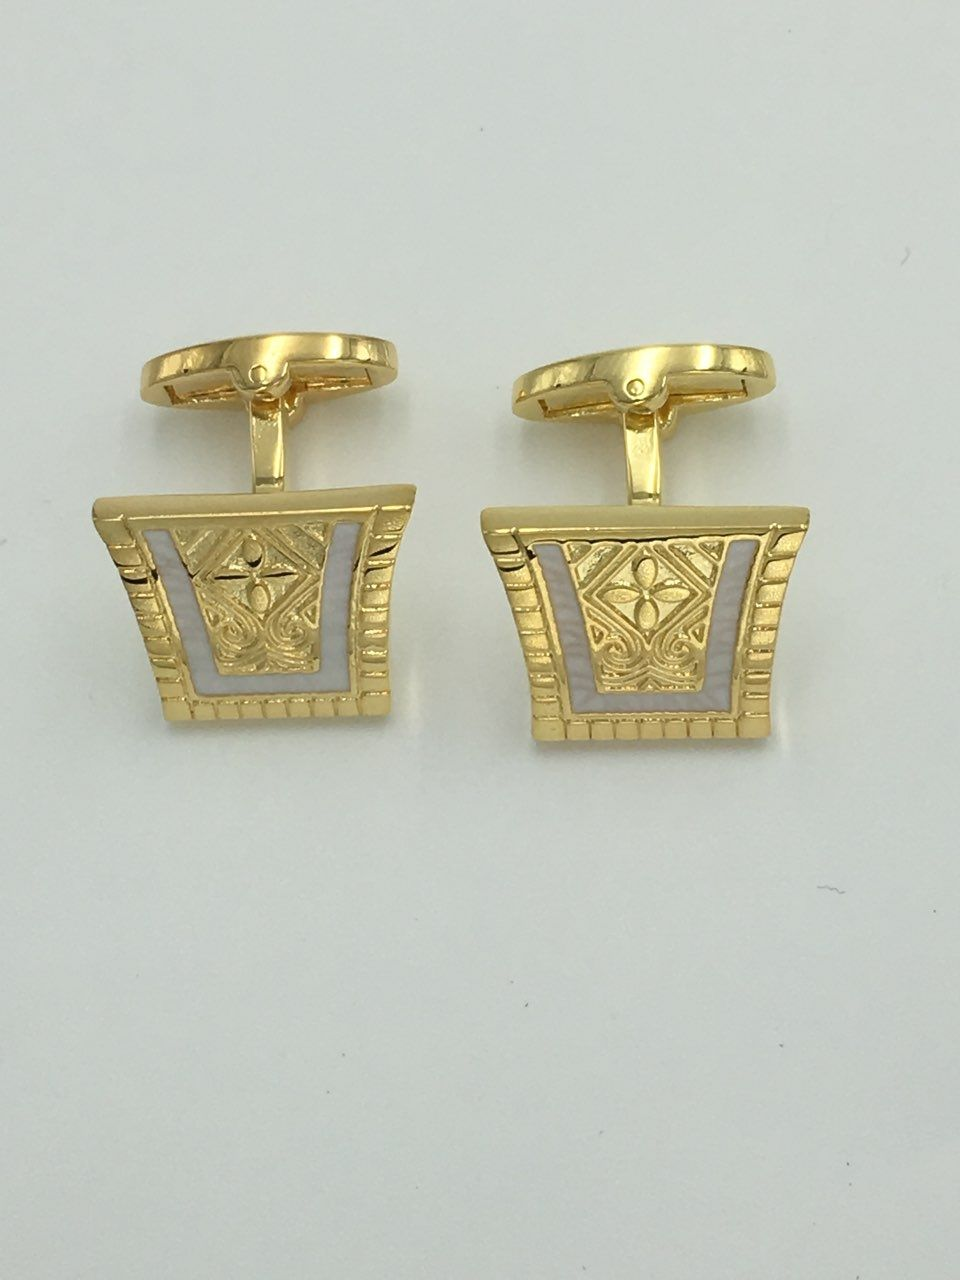 2 Pc. King of the Nile Style Cufflinks - Pure White